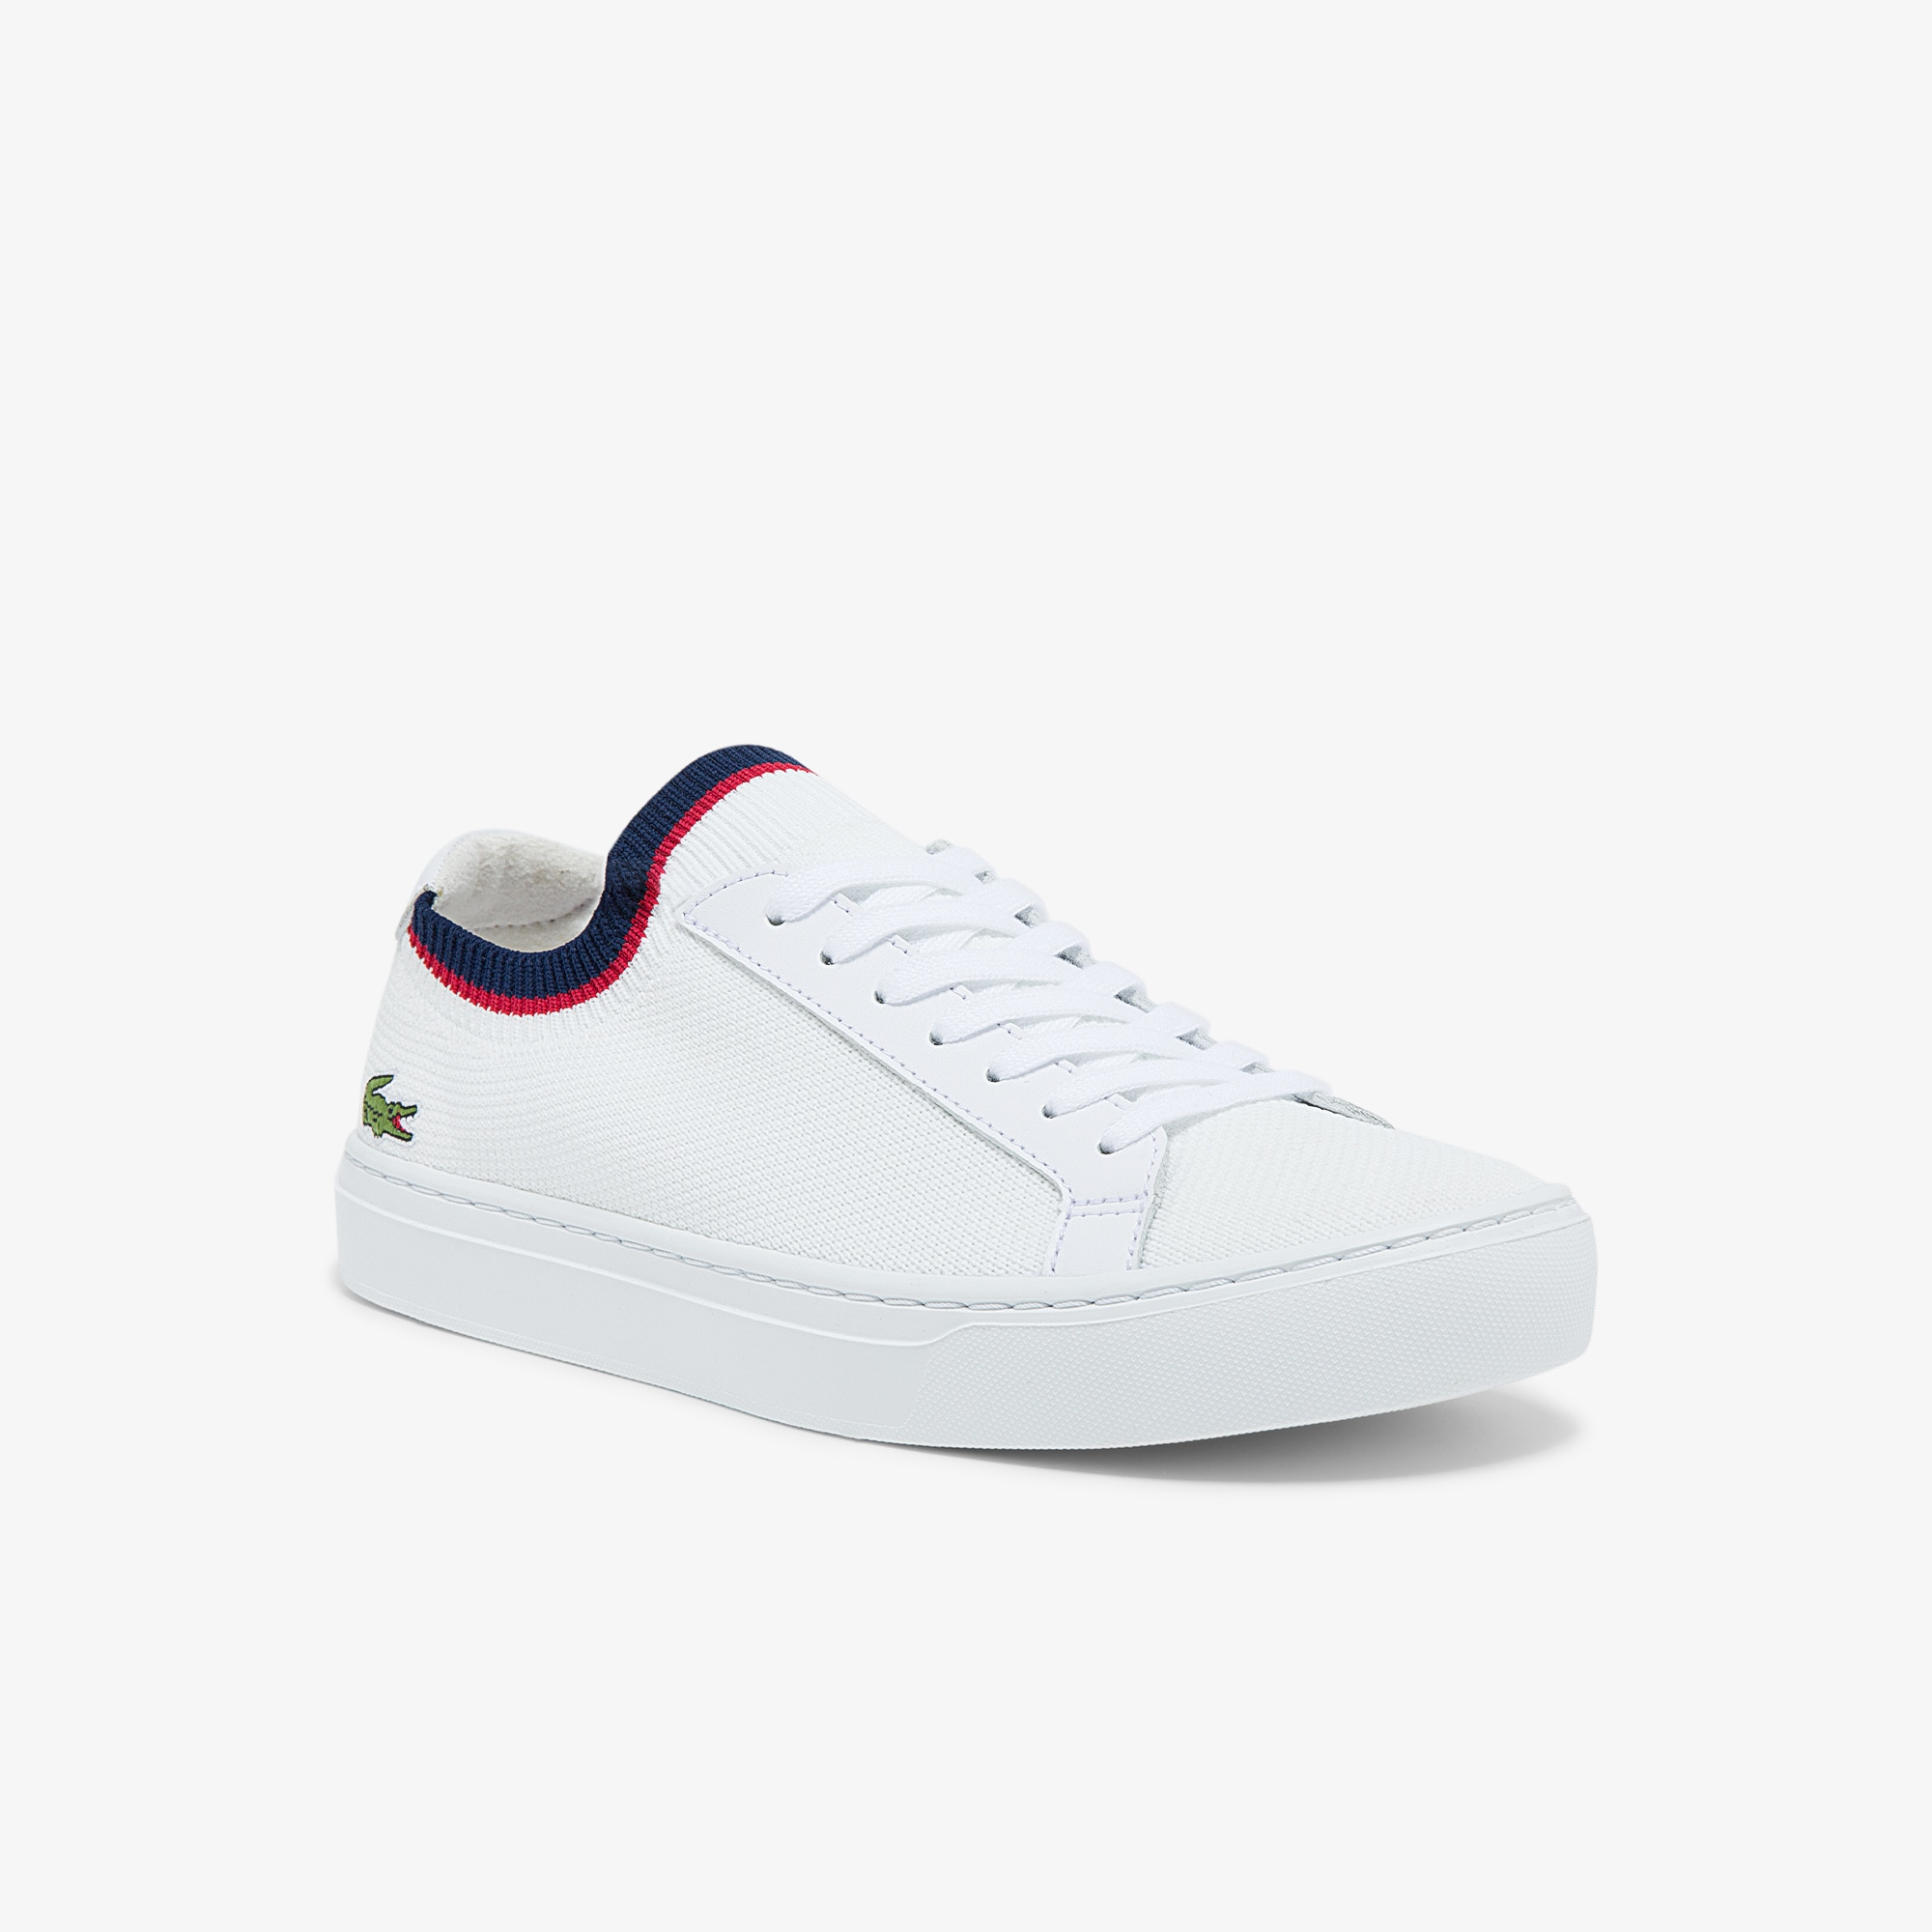 e2a7a846b25 Lacoste shoes for men  Sneakers